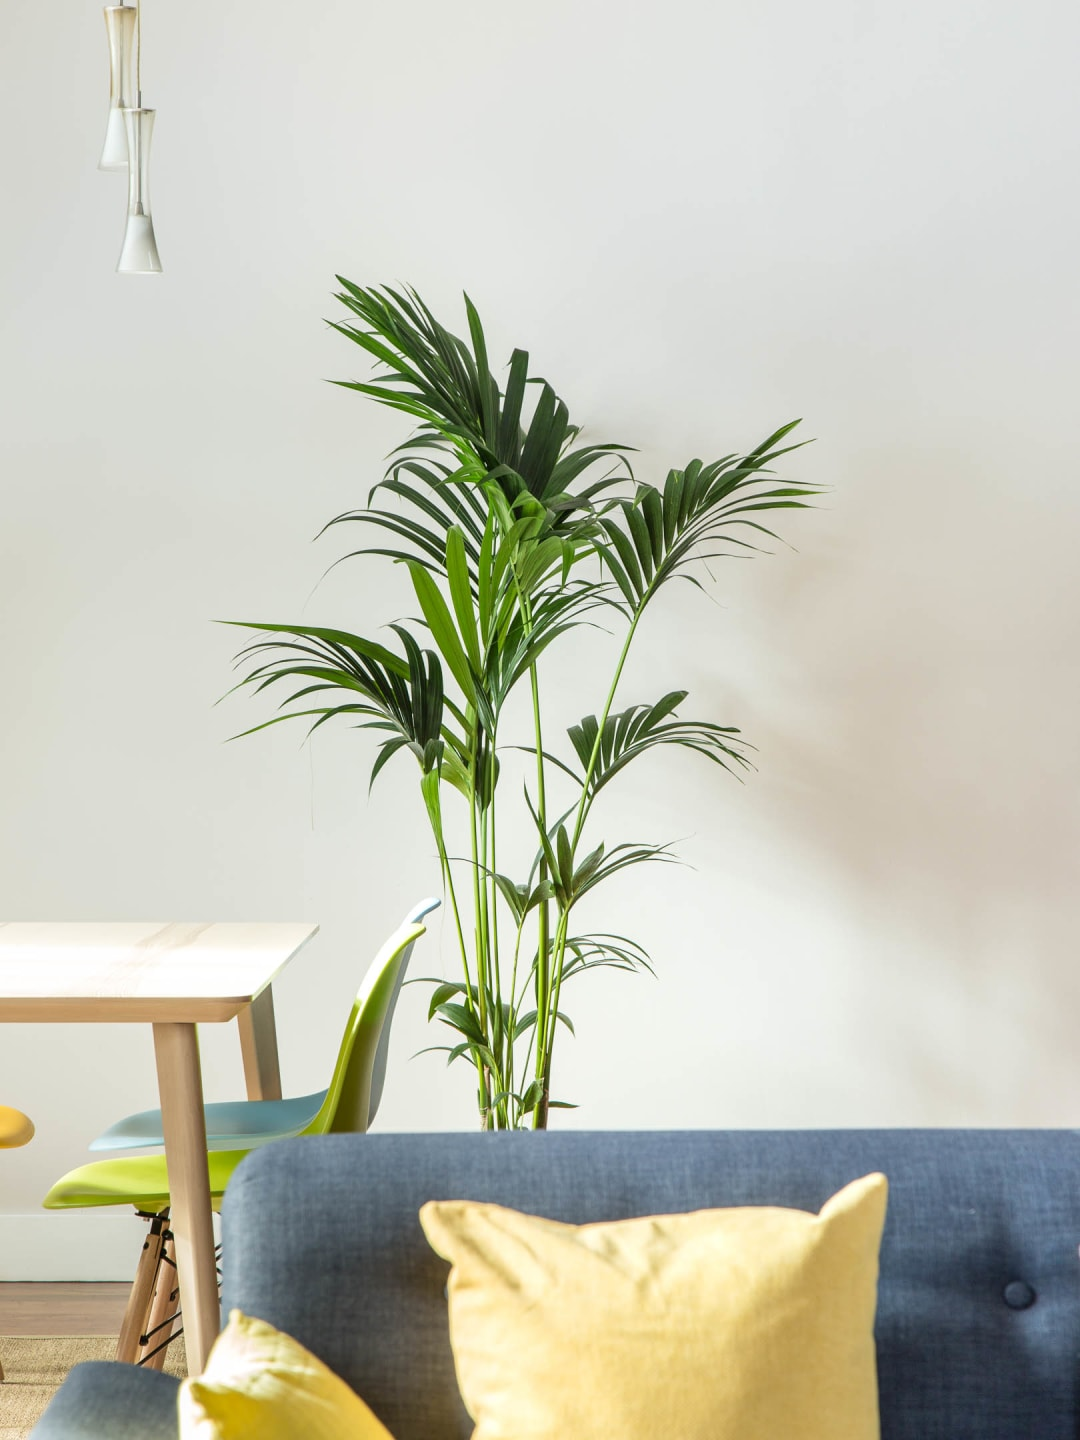 a minimal modern appartment in Leeds with green plant property photography for Bricklane.com